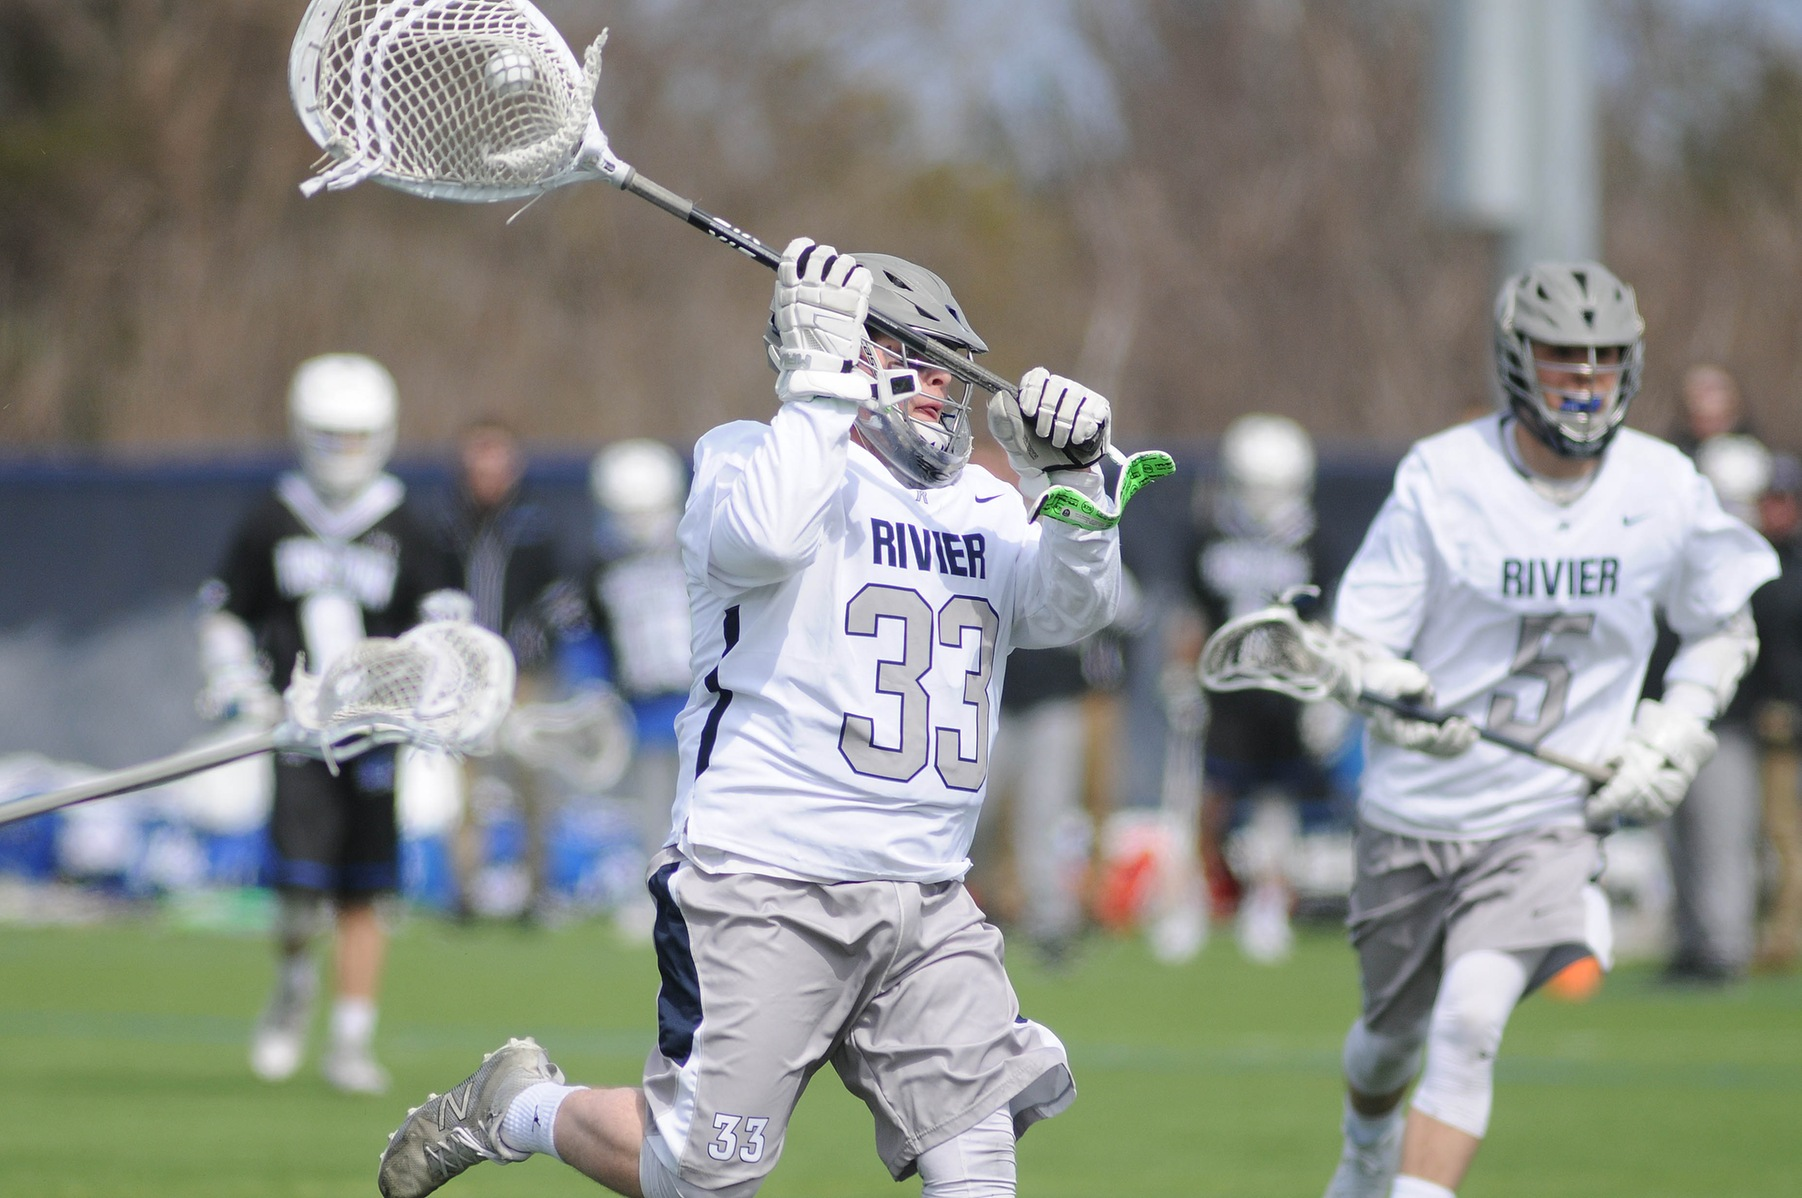 Men's Lacrosse: Raiders tripped up at home by UMass-Boston